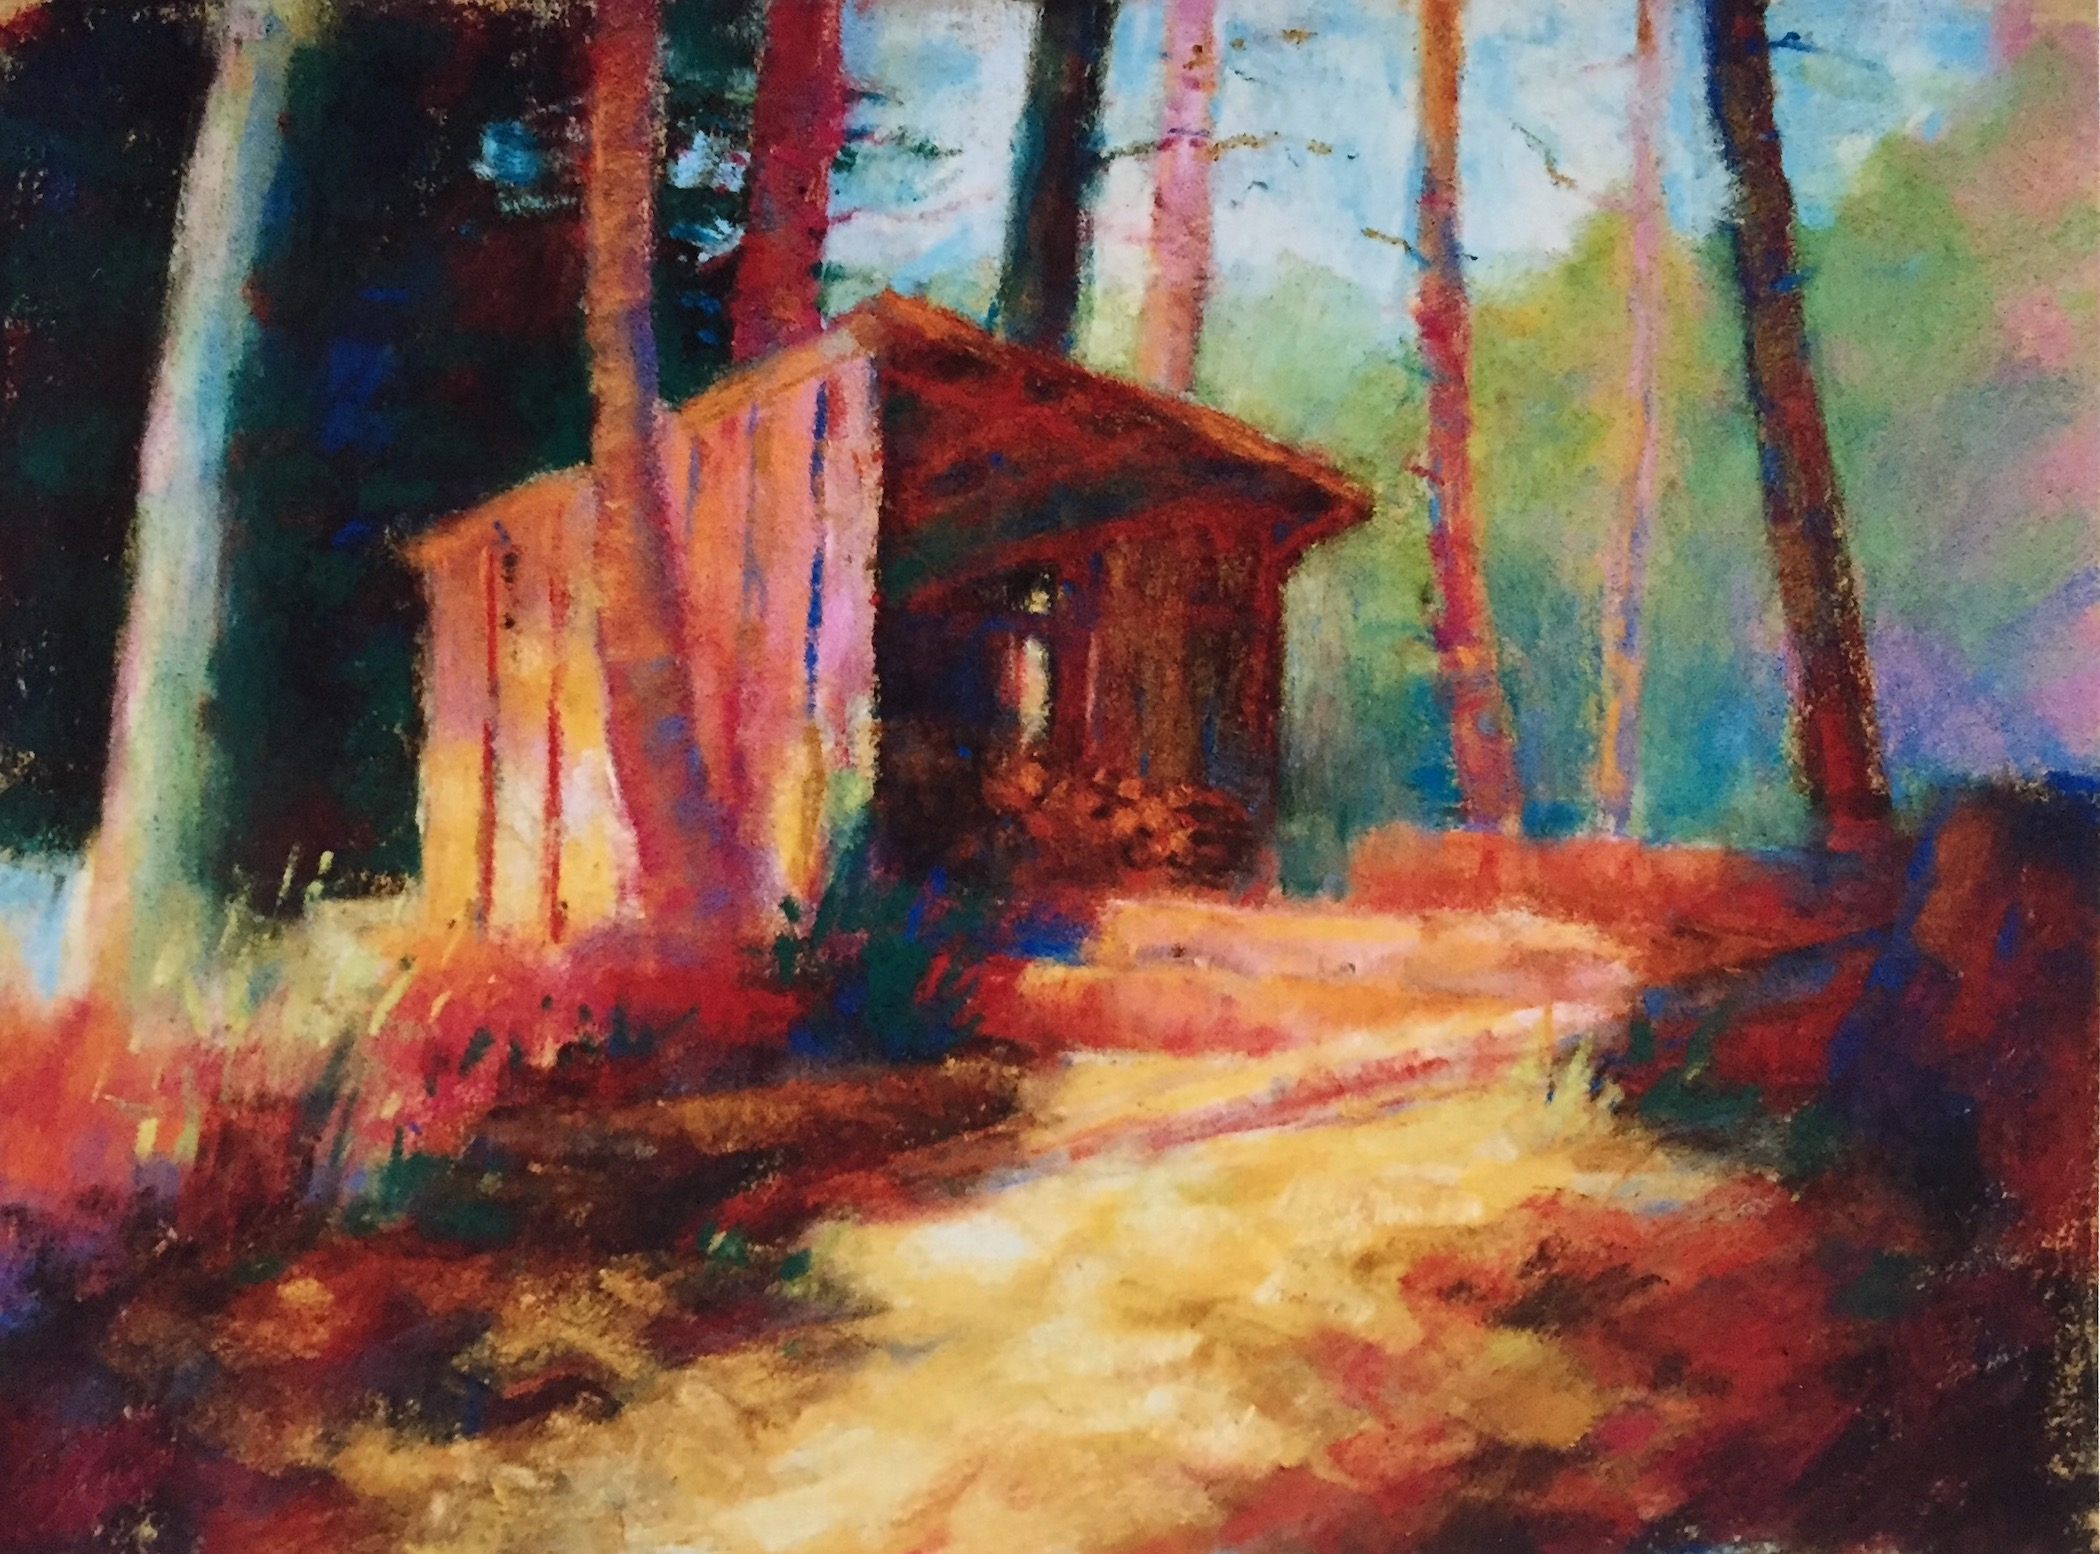 """Finding Your Style: Gail Sibley, """"Wood Shed,"""" c. 2004, pastel on Wallis paper, 9 x 12 in"""